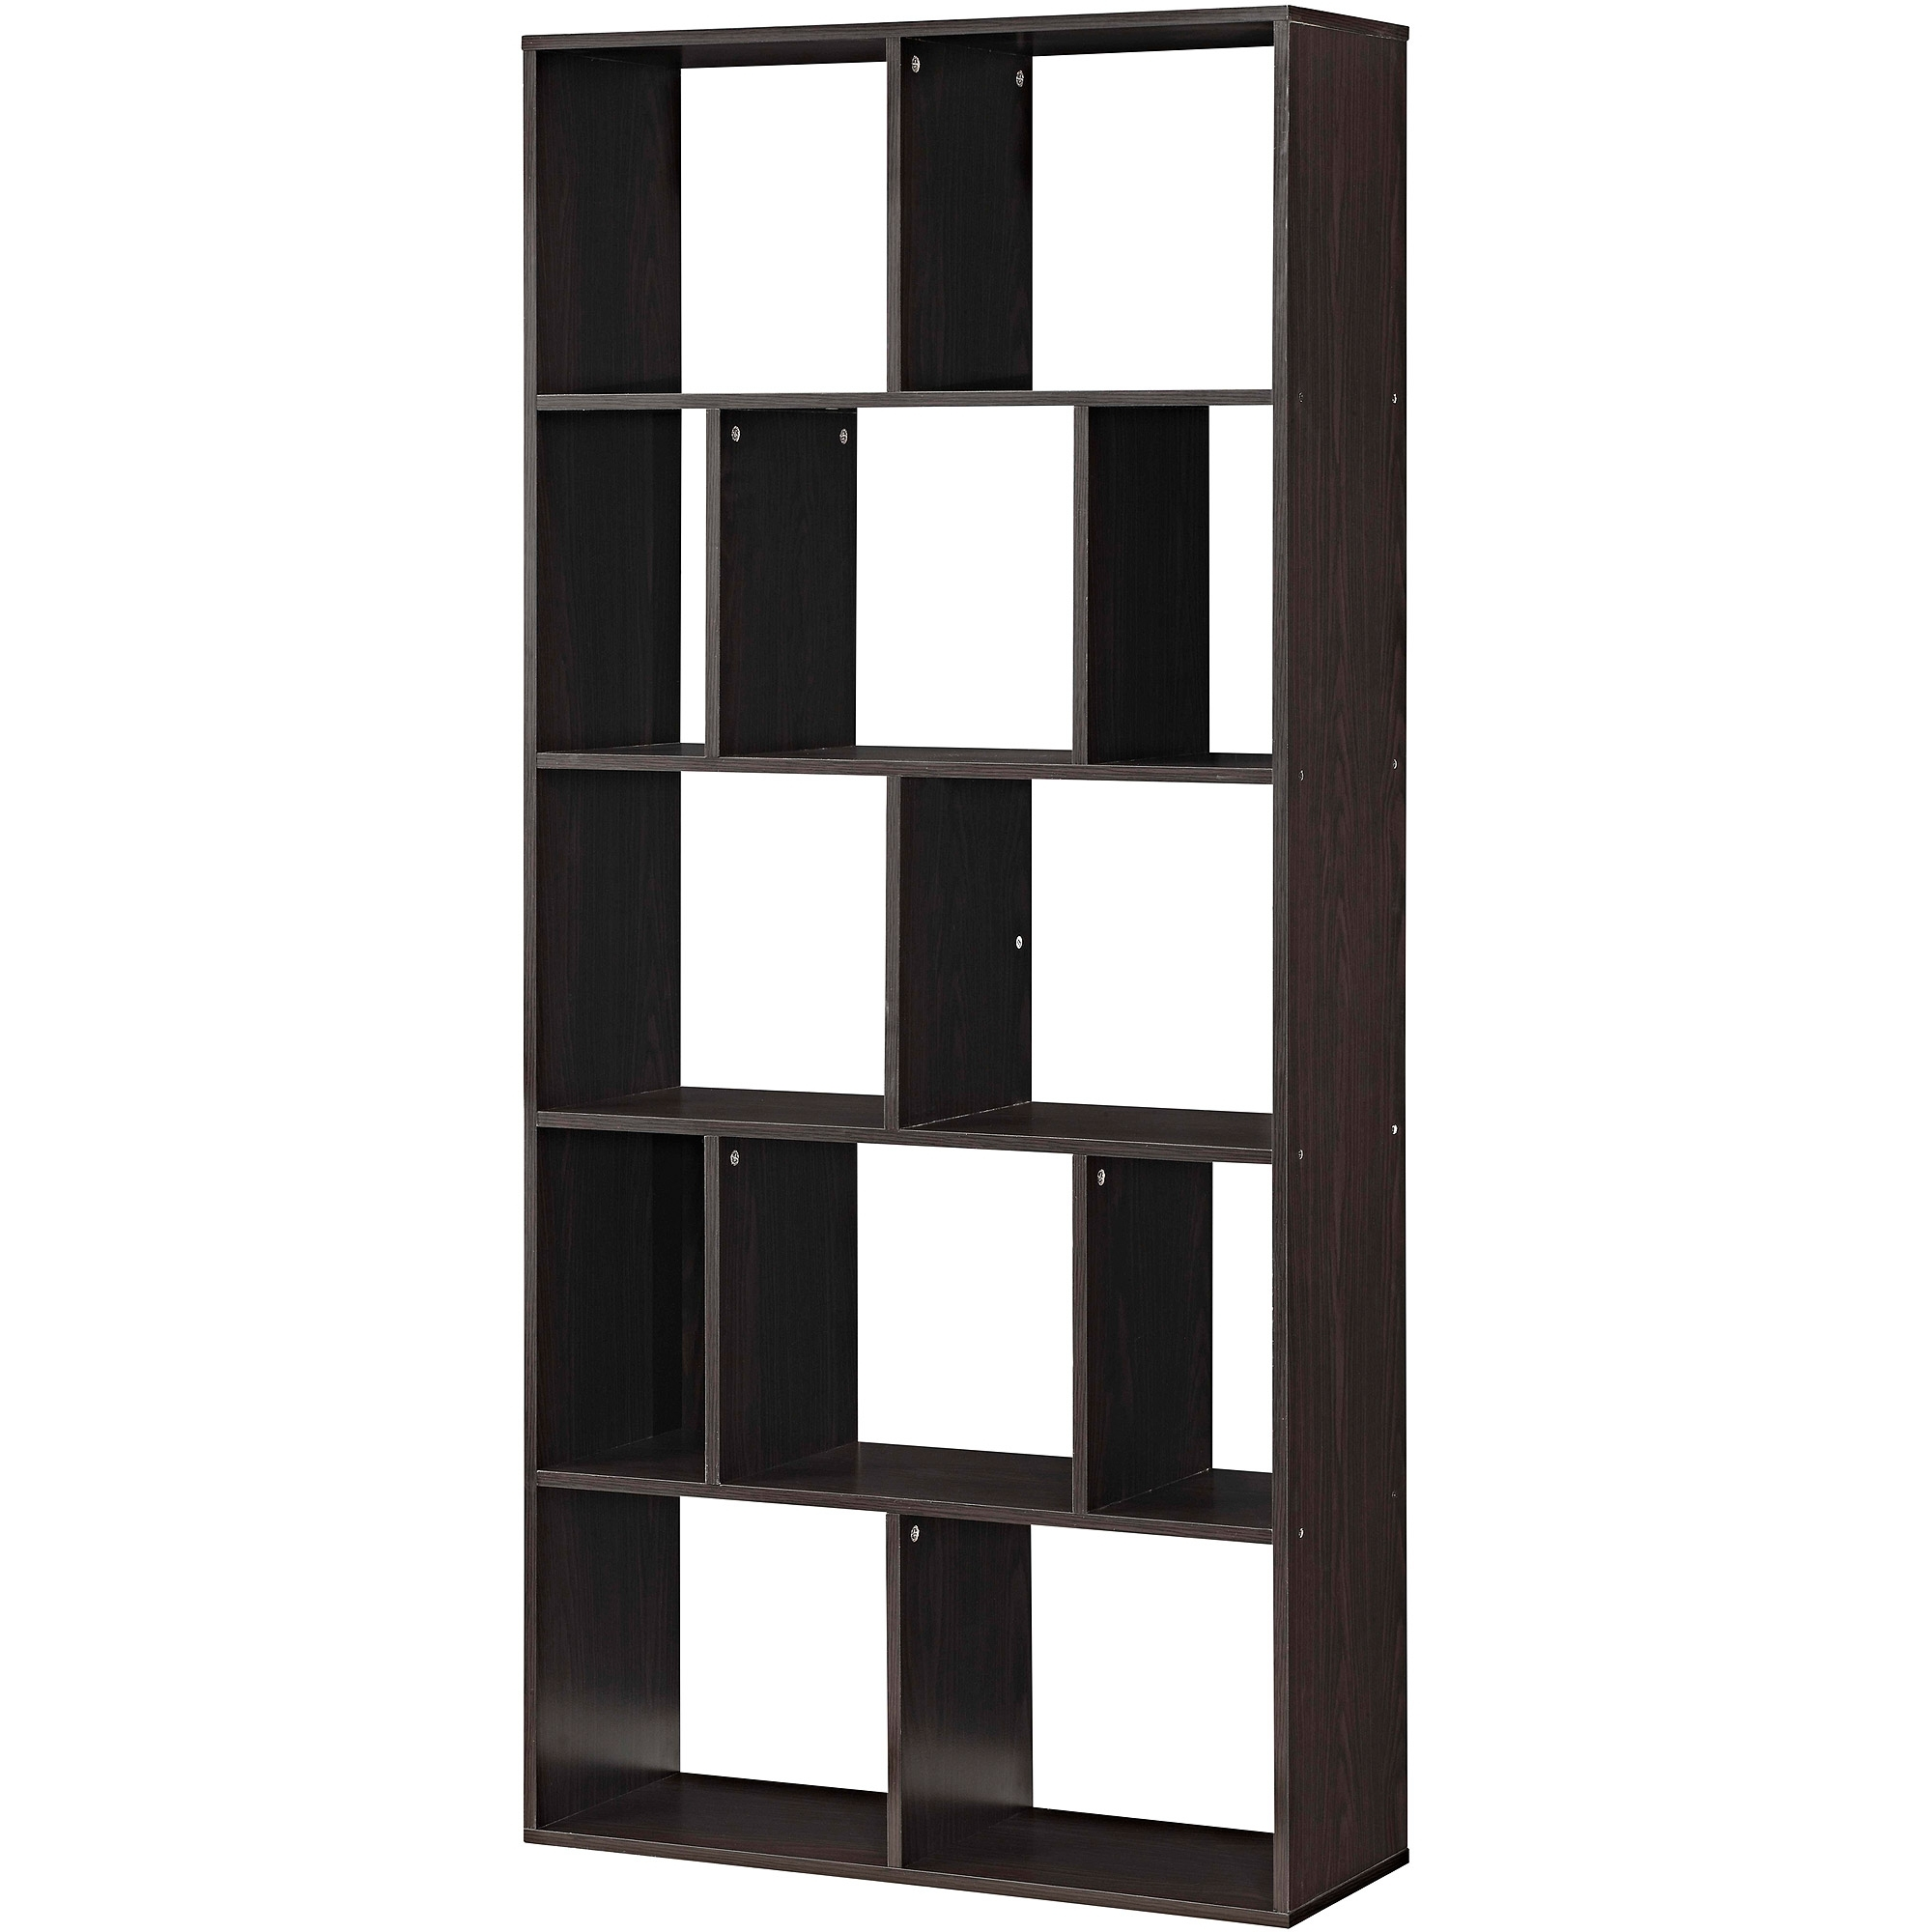 Mainstays Home 12 Shelf Cube Bookcase, Multiple Finishes – Walmart With Regard To Most Popular Cube Bookcases (View 10 of 15)